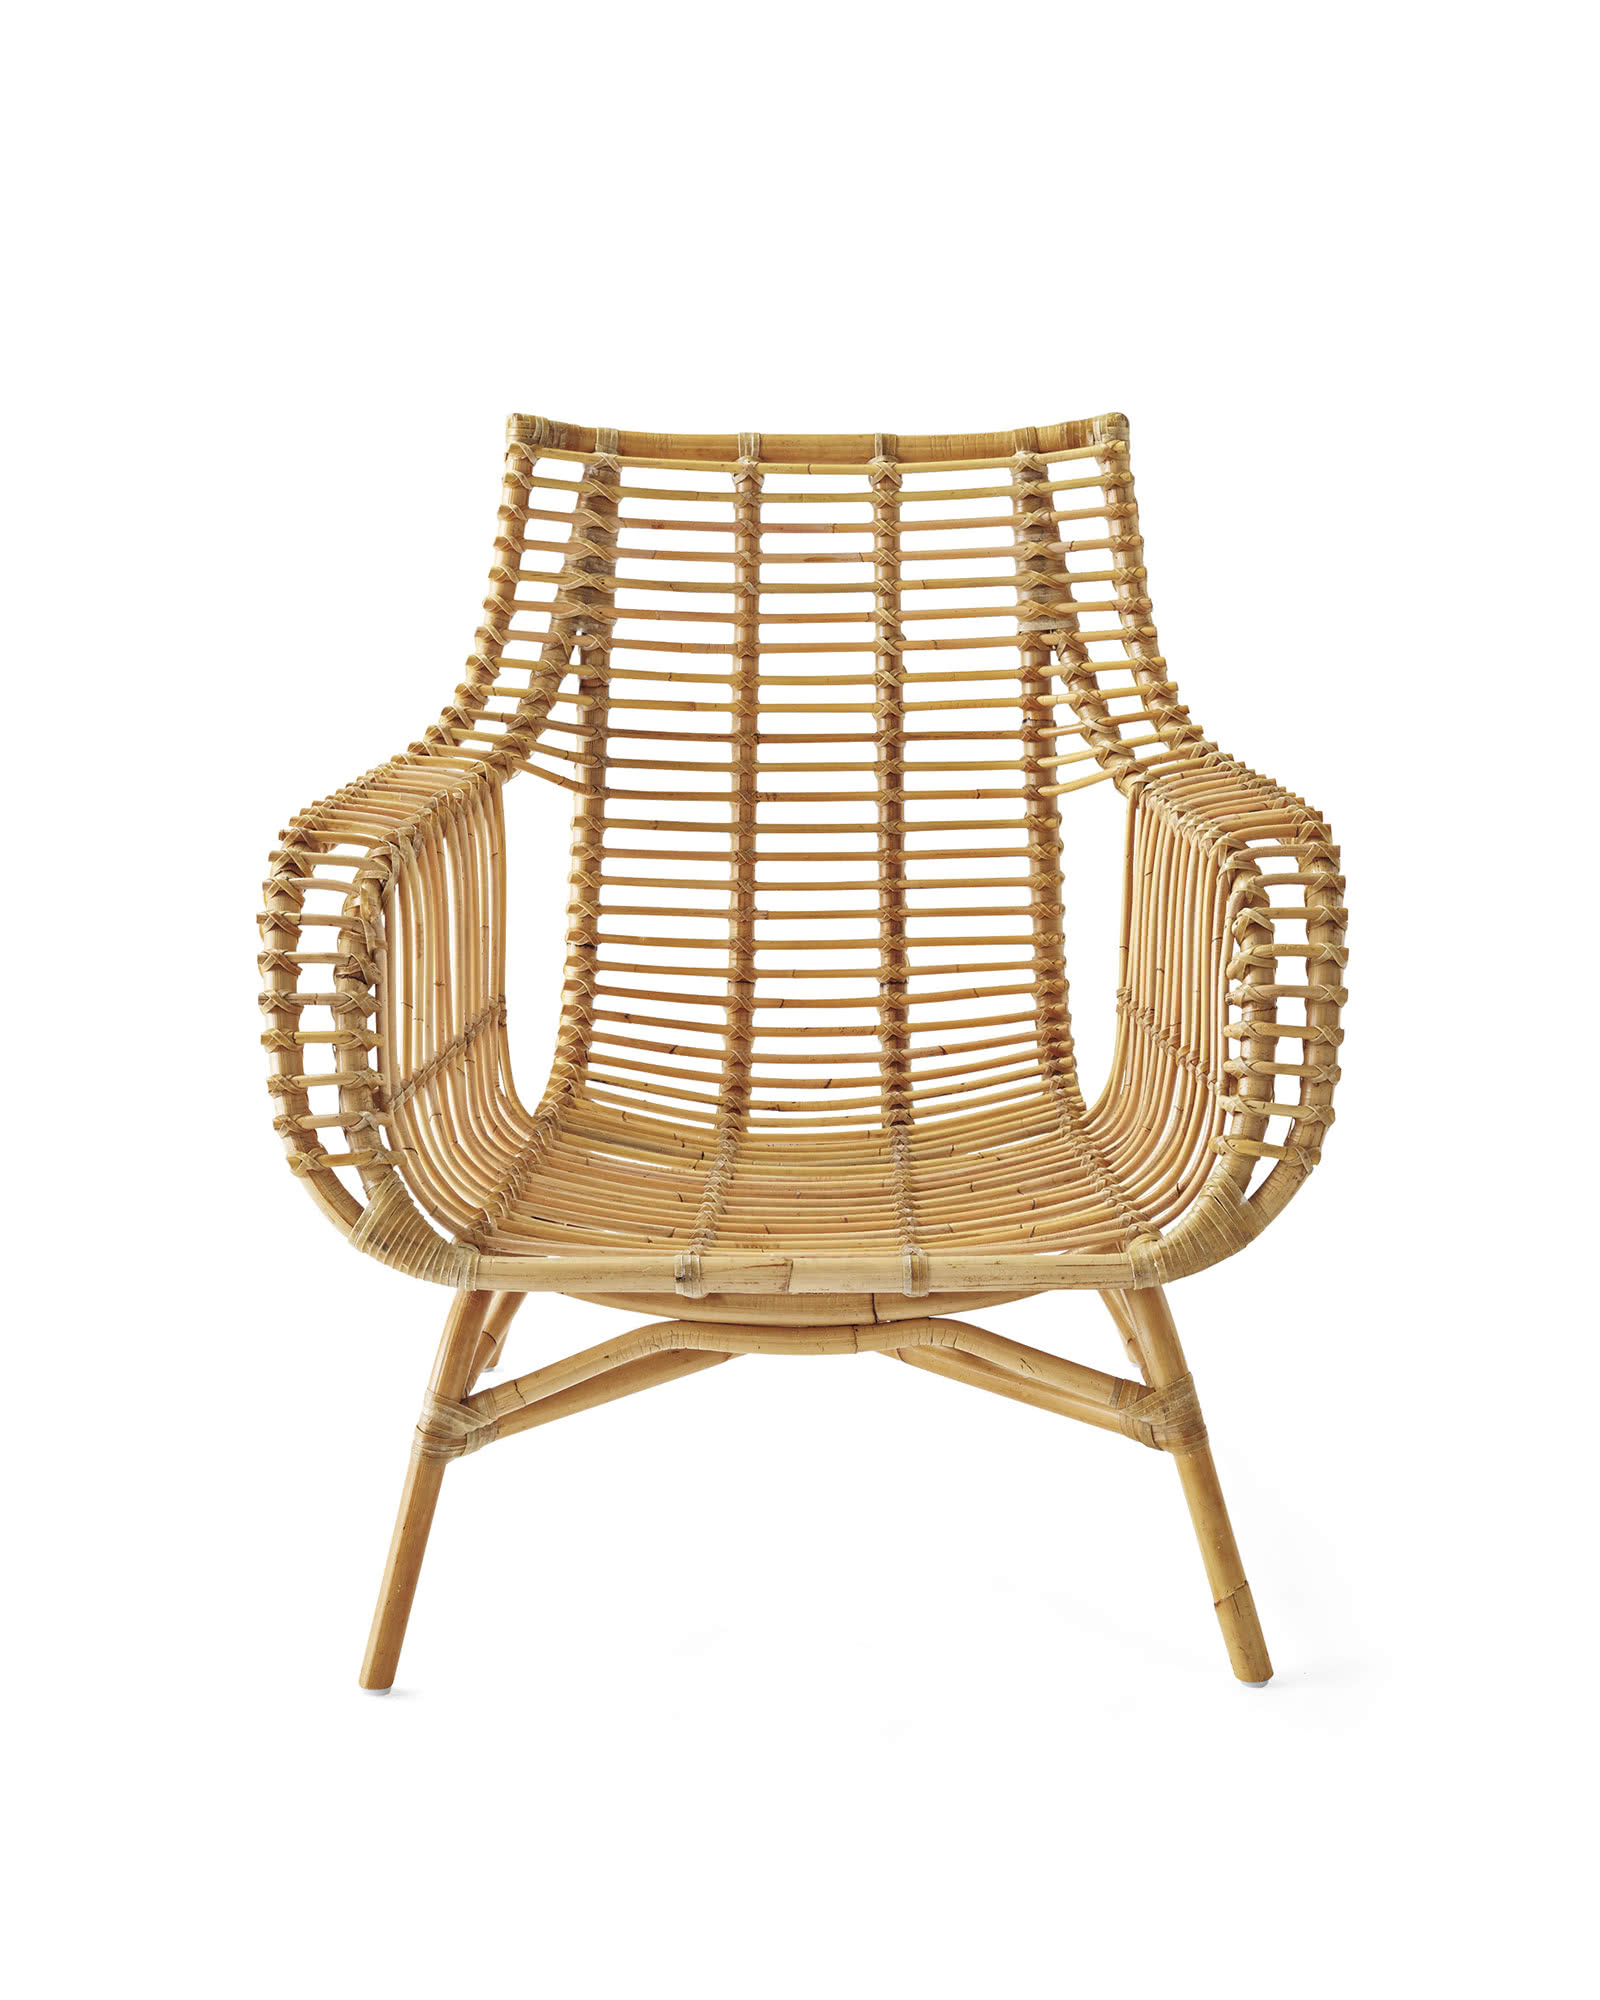 Woven Chair Venice Rattan Chair Serena And Lily